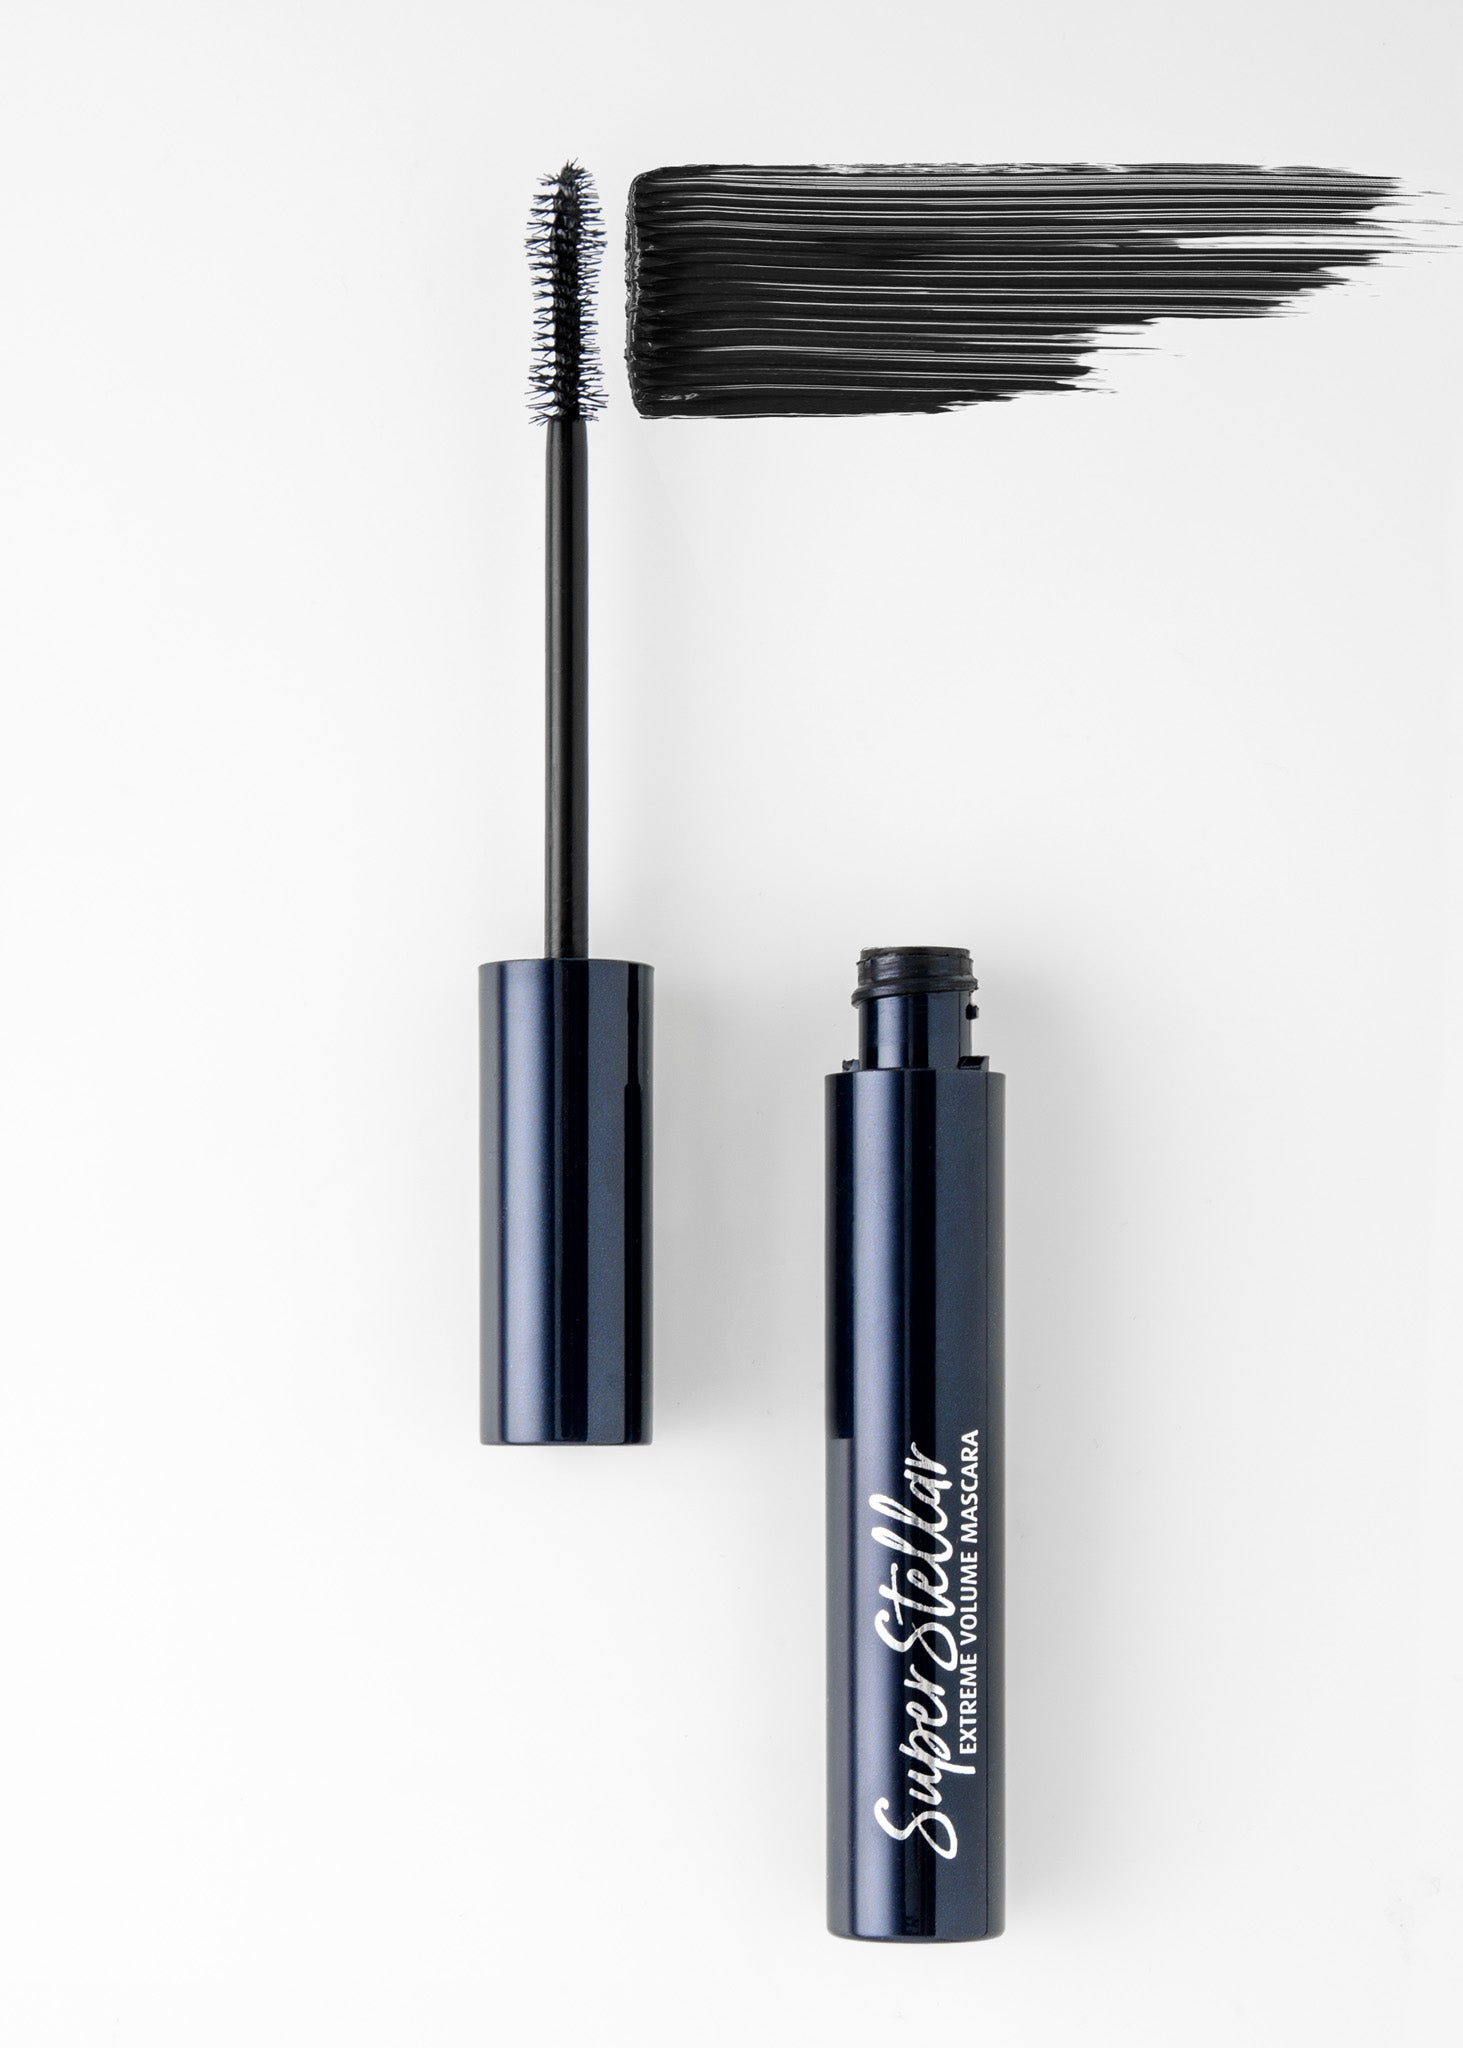 SuperStellar Extreme Volume Mascara